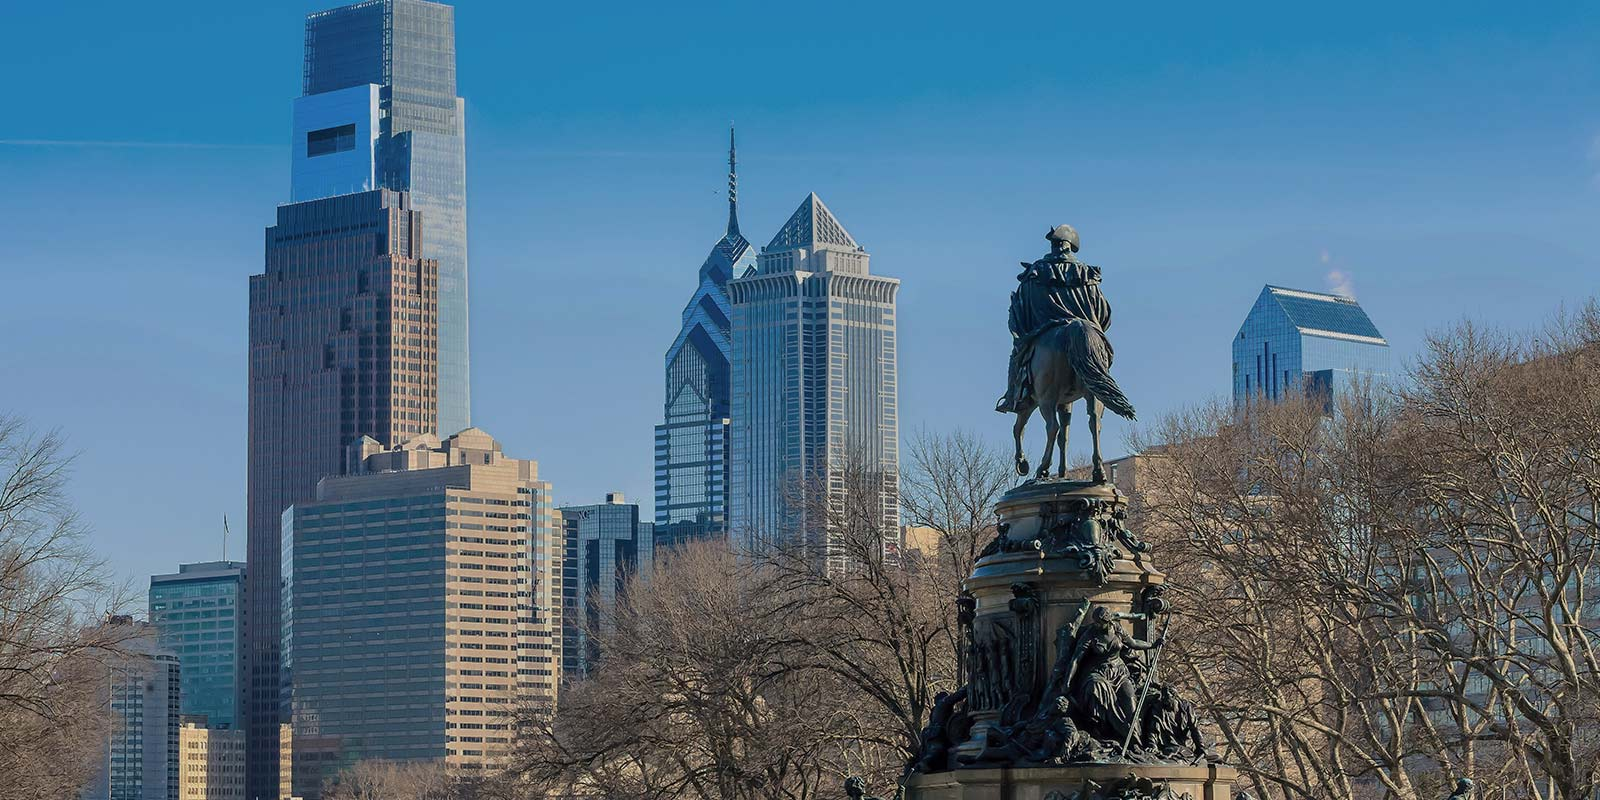 philadelphia birthplace of our nation and new york ef explore america. Black Bedroom Furniture Sets. Home Design Ideas